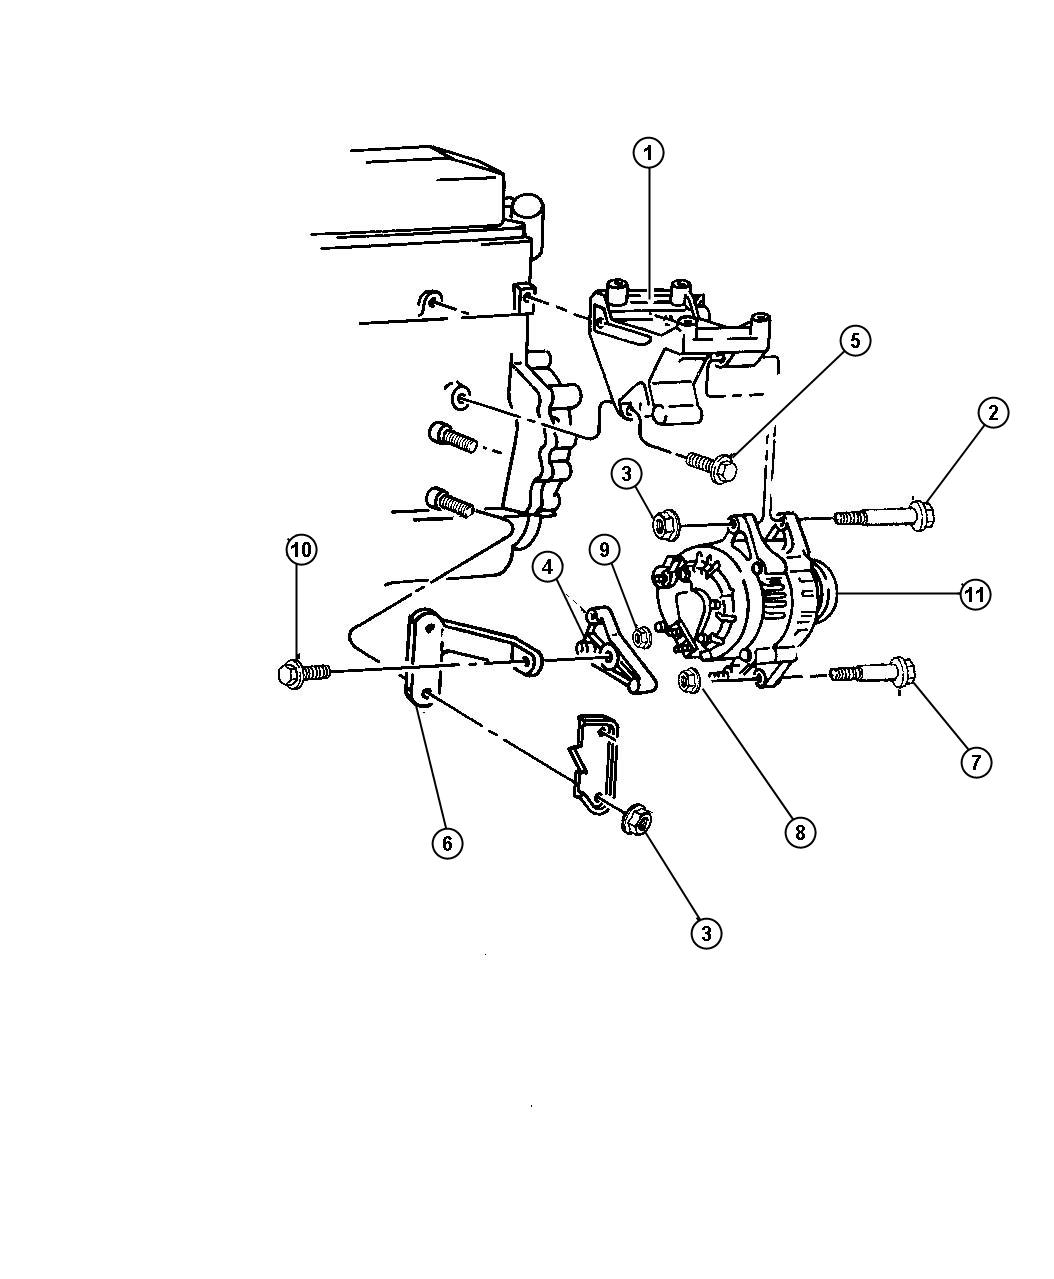 Wiring diagram for 2002 toyota avalon xls additionally 2012 volkswagen jetta fuse diagram as well 2006